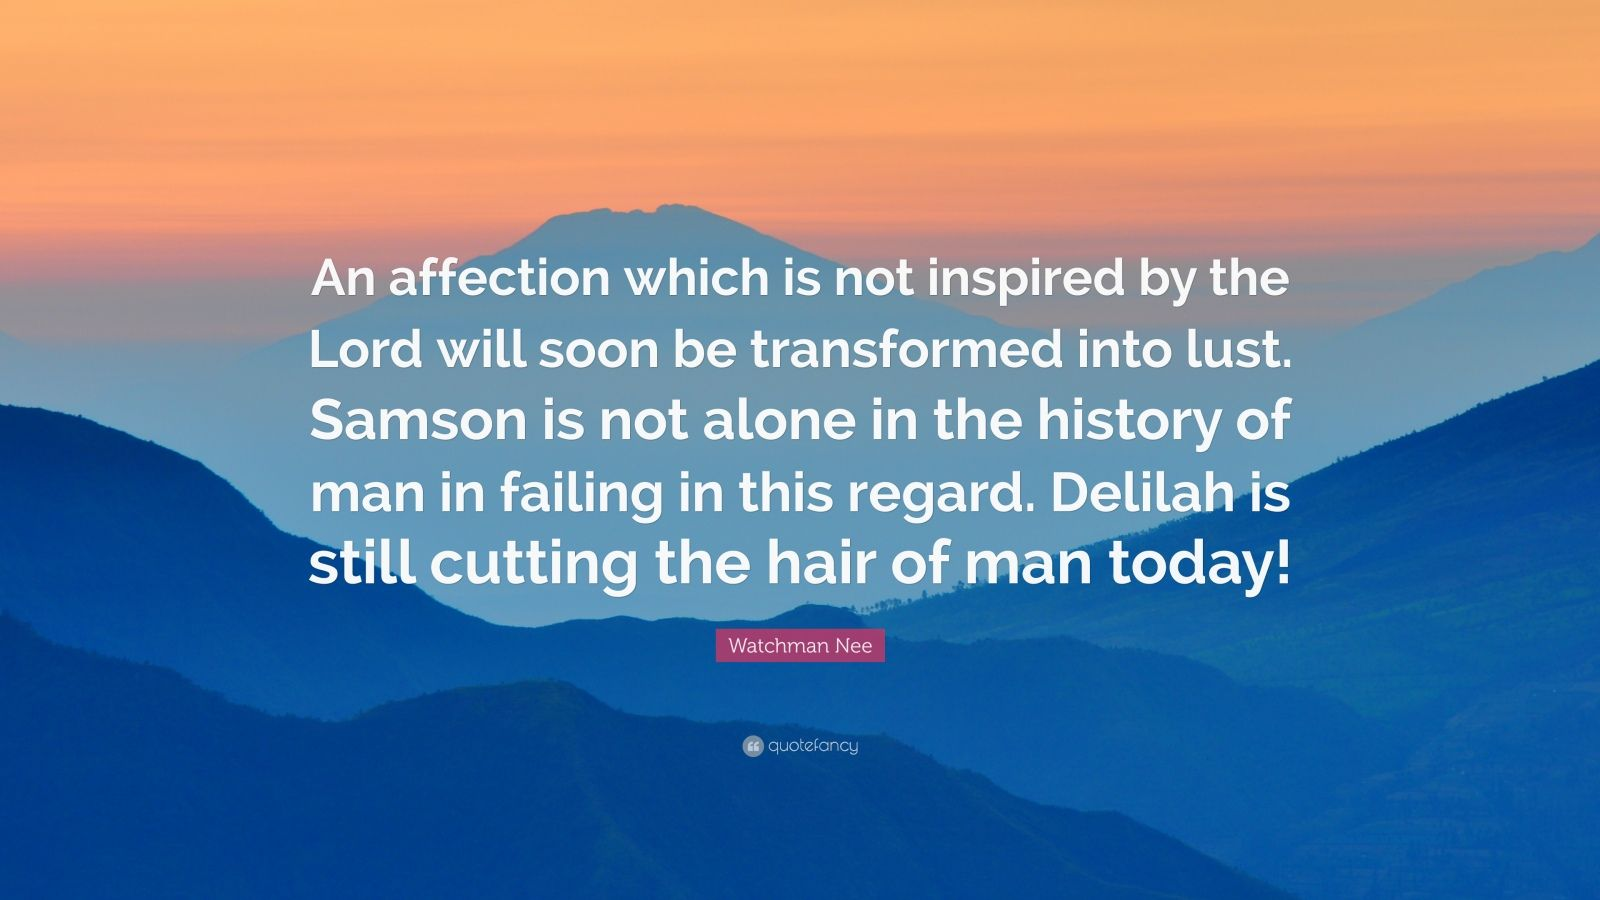 """Watchman Nee Quote: """"An affection which is not inspired by the Lord will soon be transformed into lust. Samson is not alone in the history of man in failing in this regard. Delilah is still cutting the hair of man today!"""""""